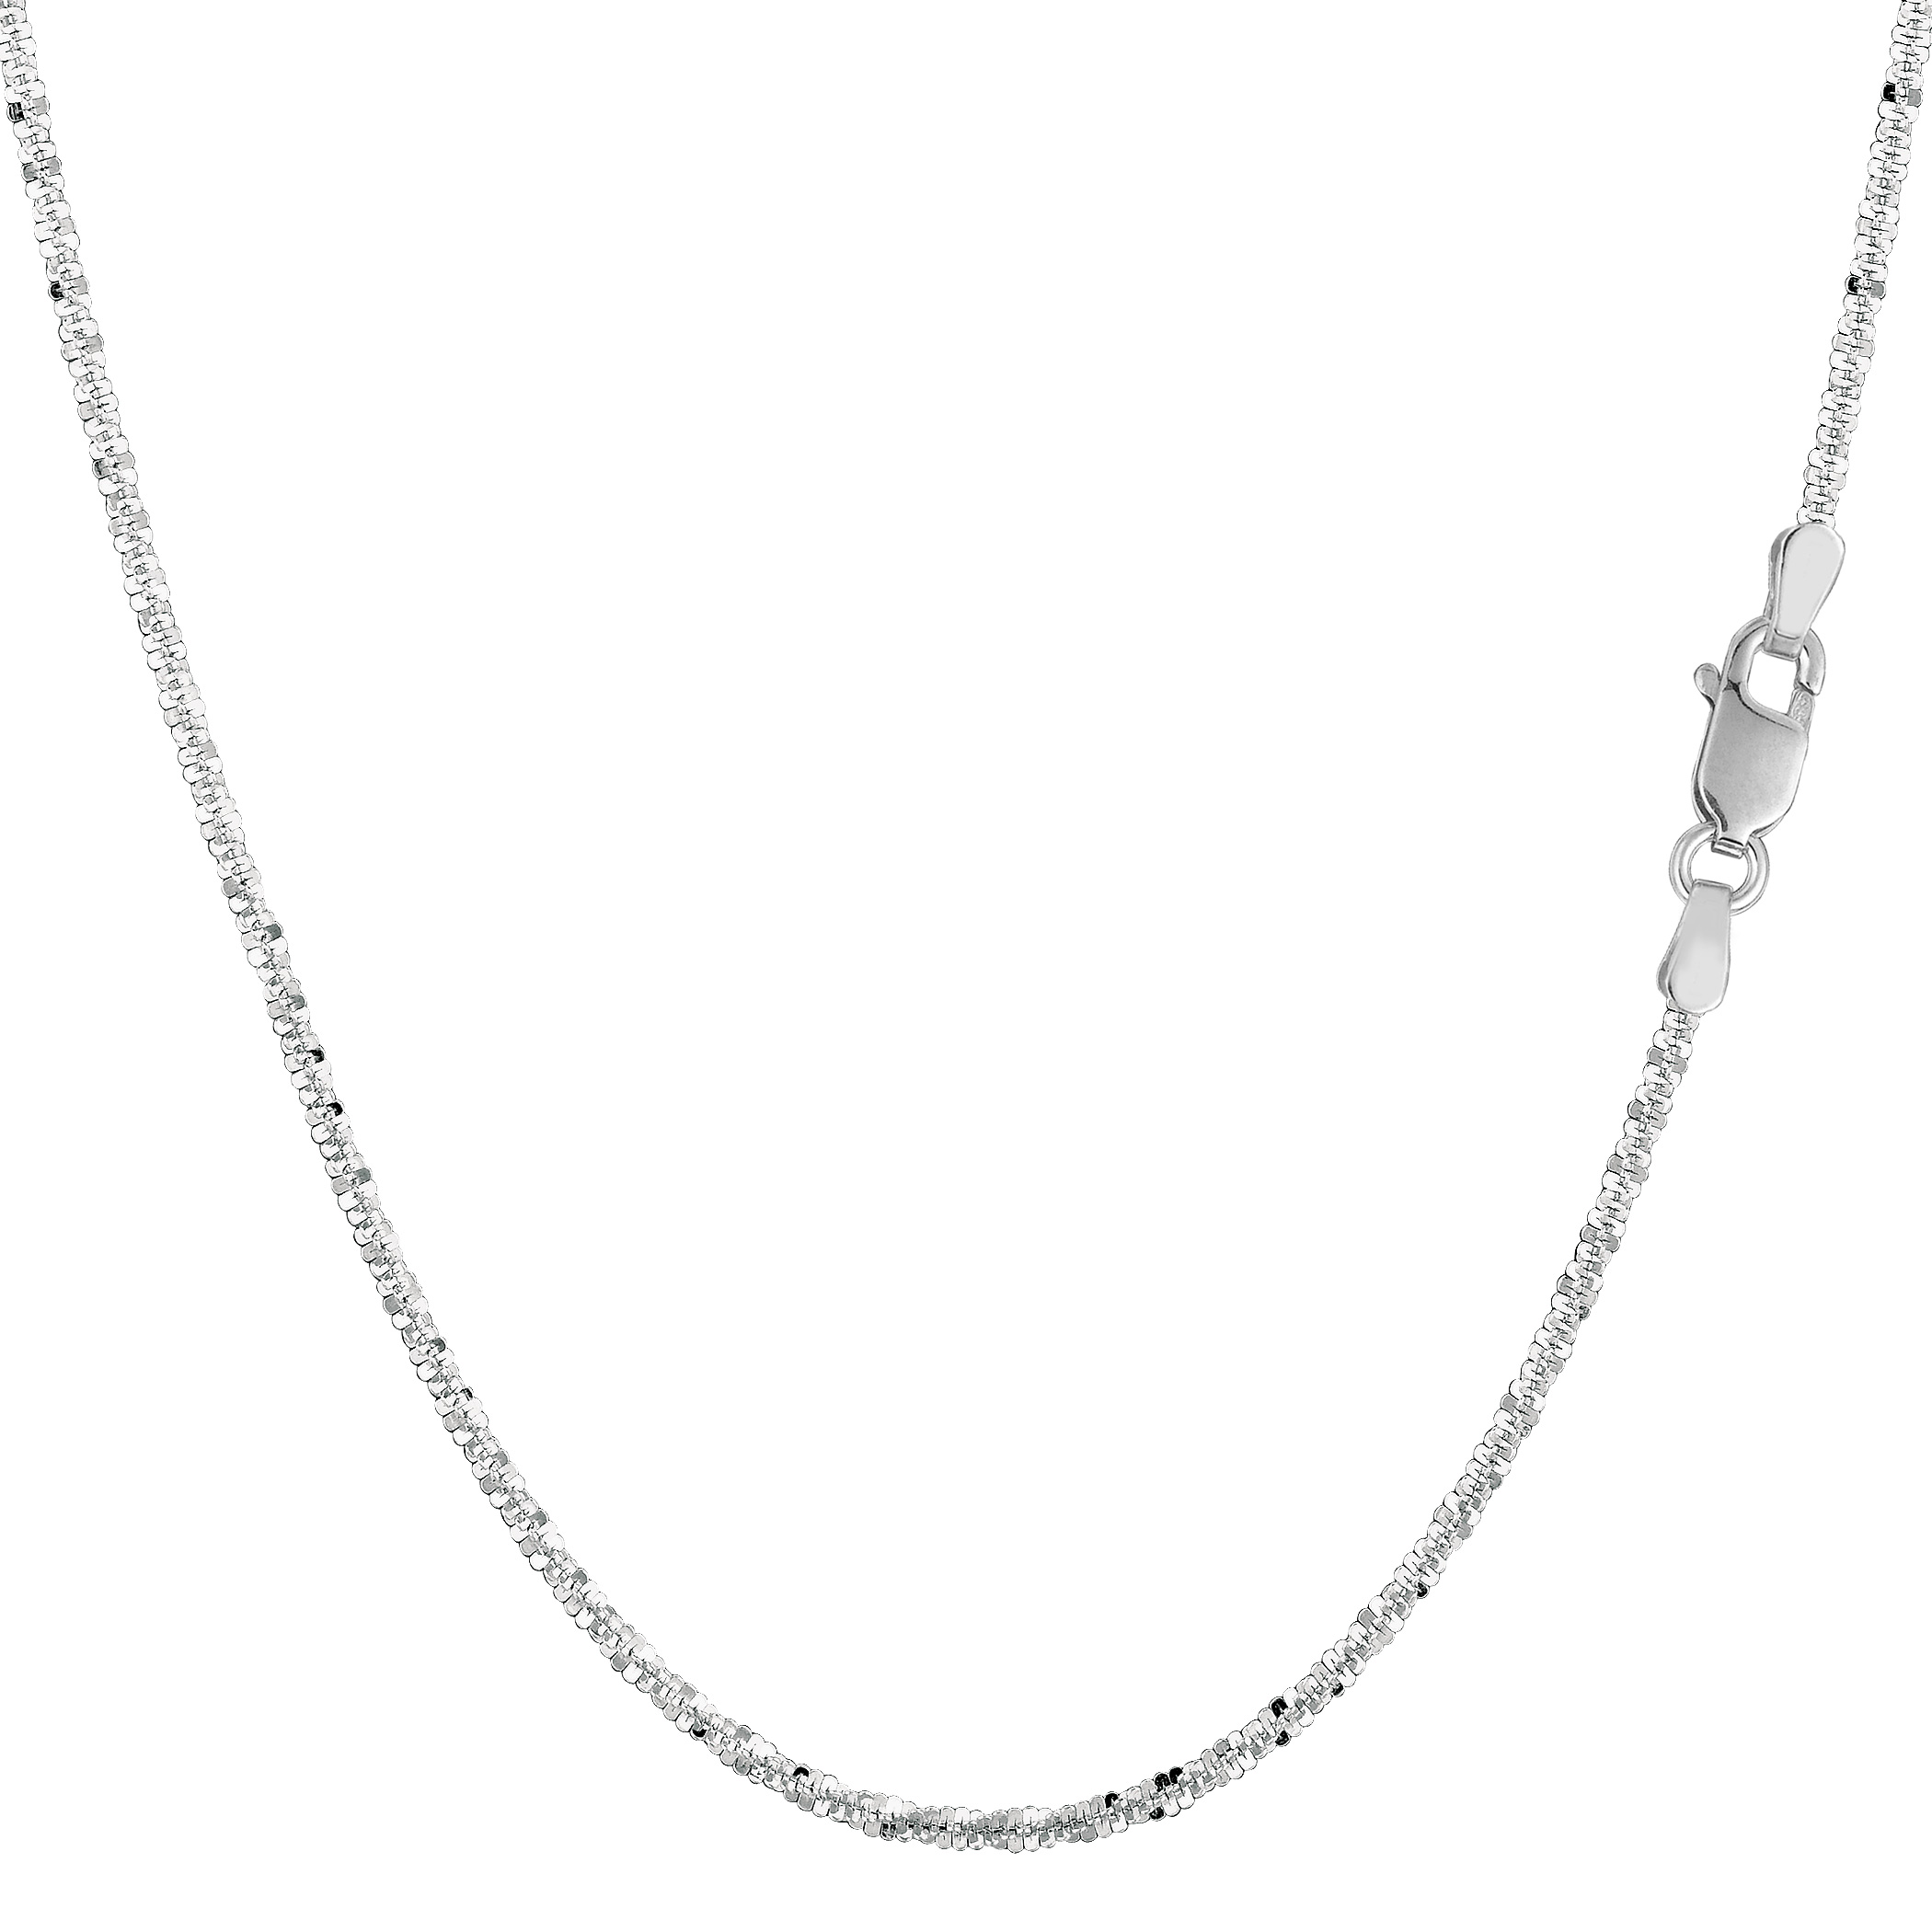 14k White Gold Sparkle Chain Bracelet, 1.5mm, 7″